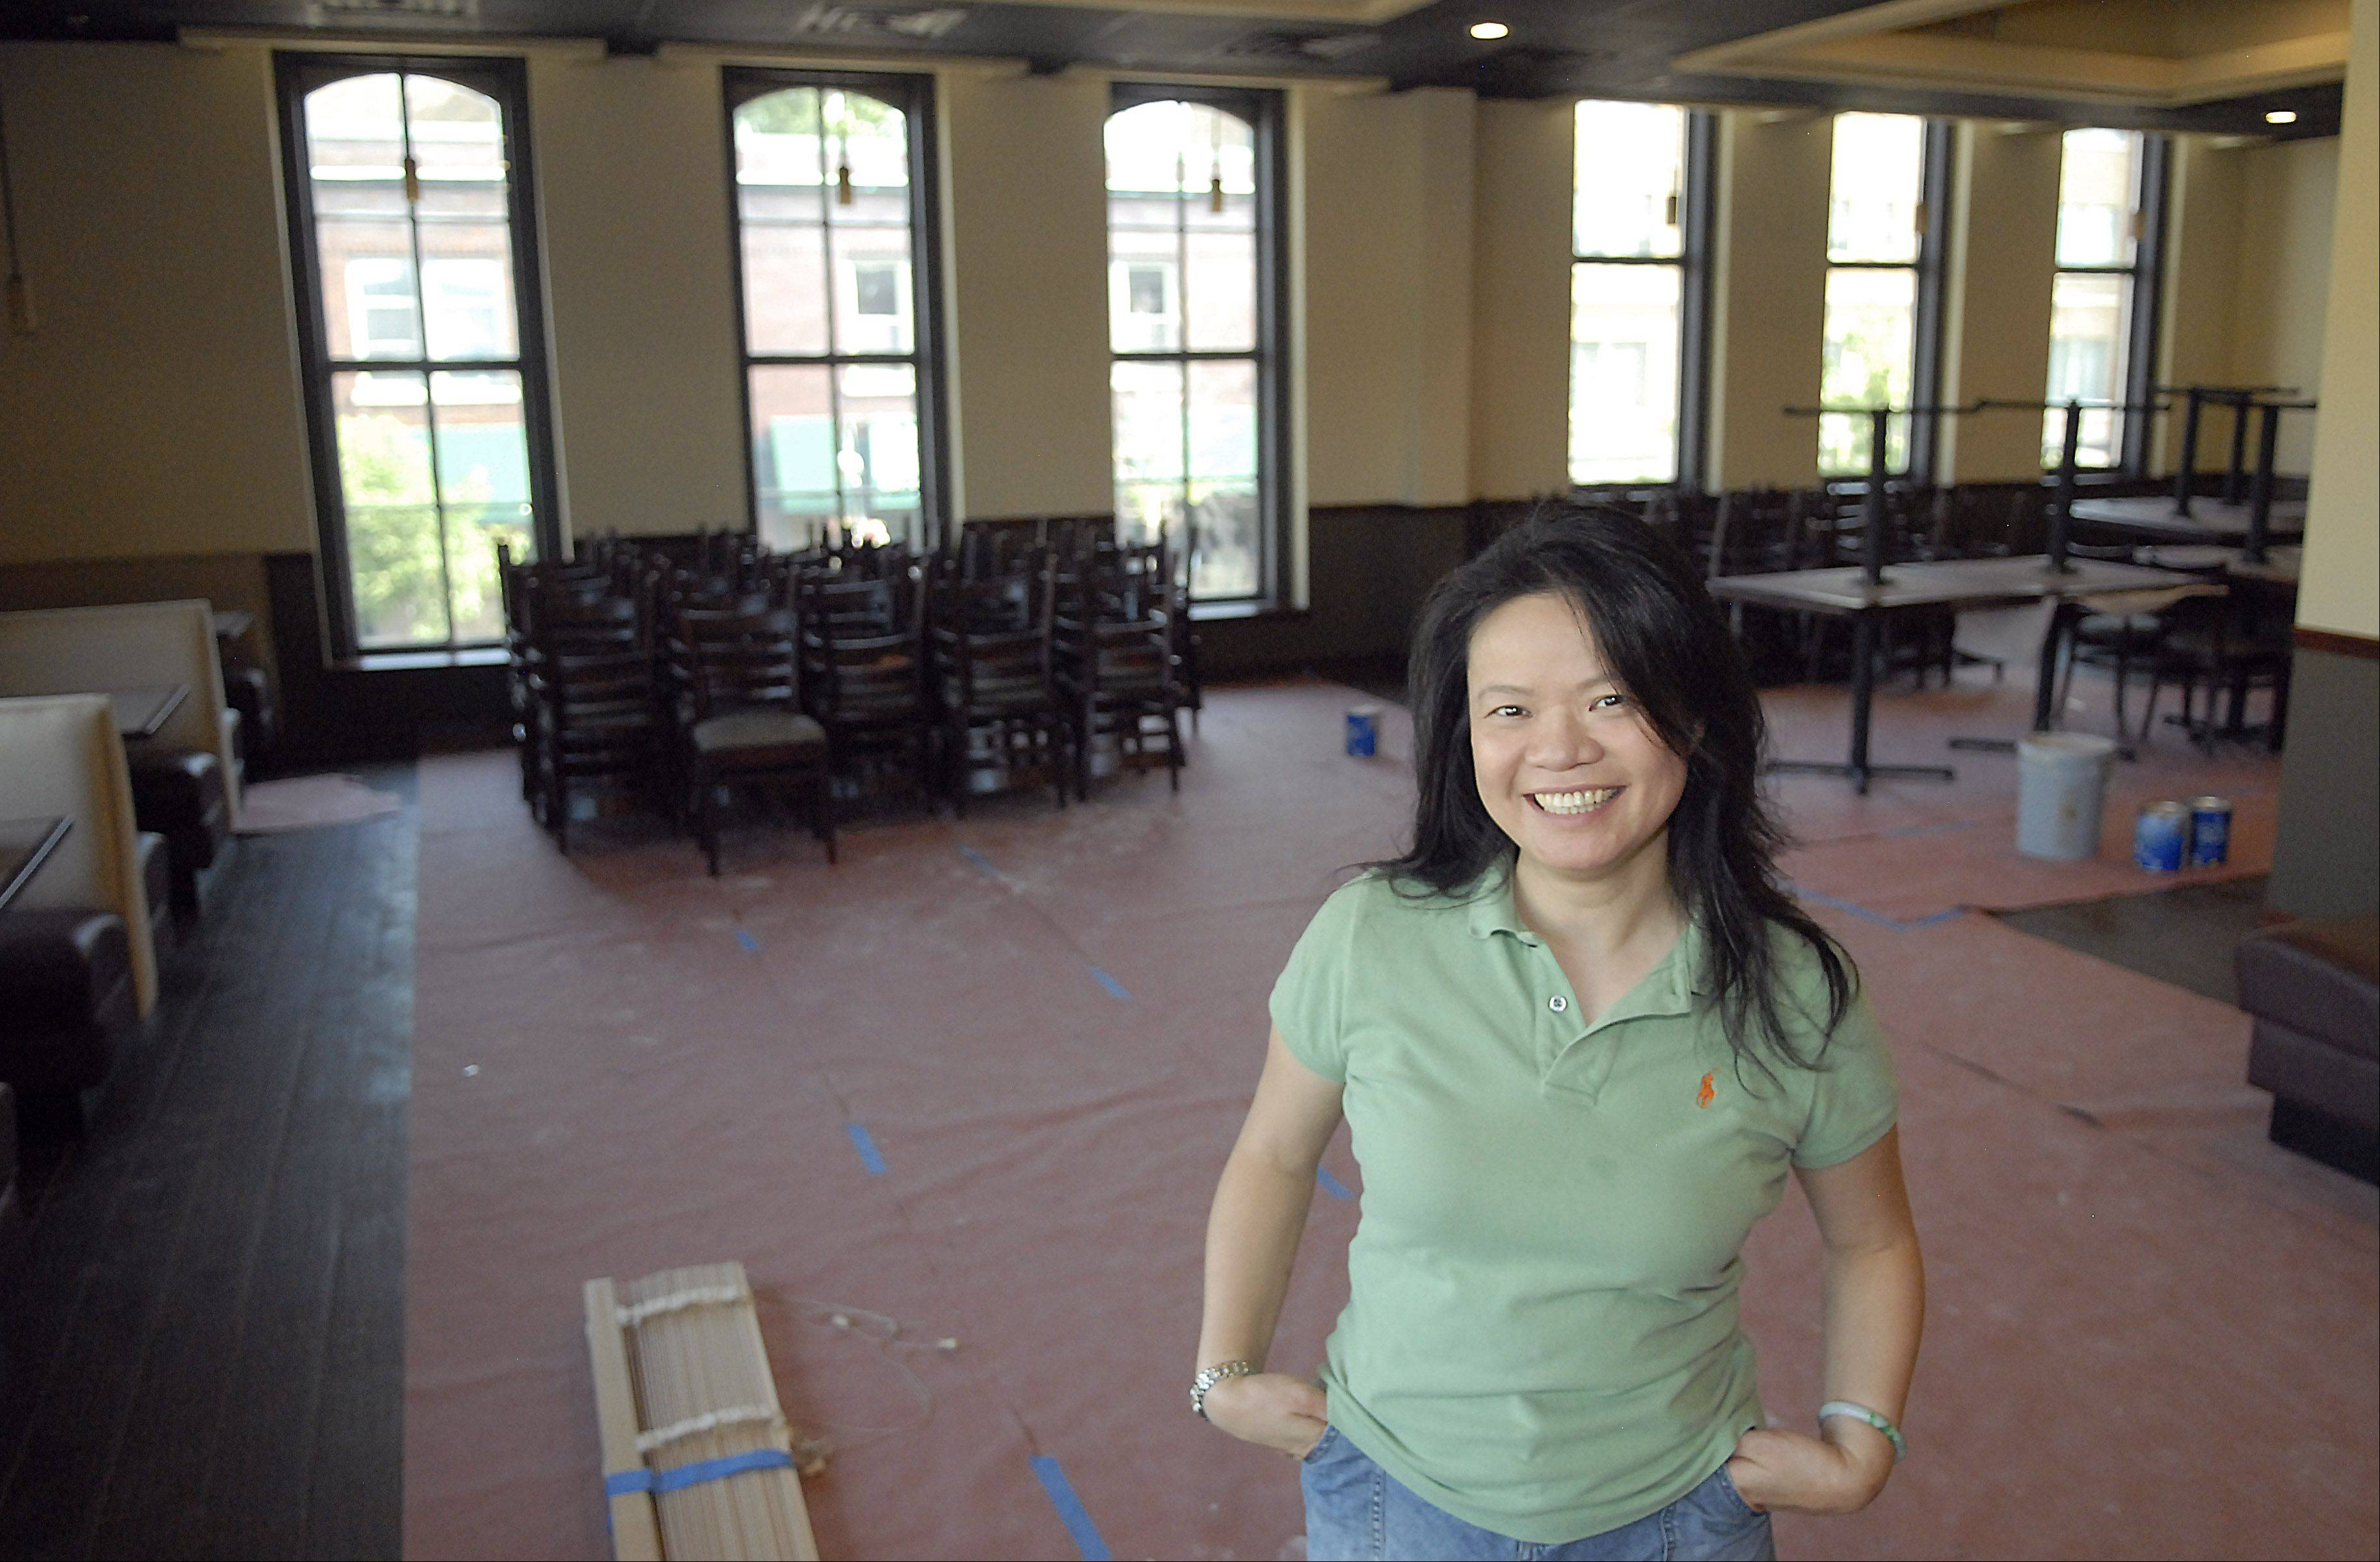 Nancy Chen, owner of Szechwan Restaurant in downtown St. Charles, is nearly ready to reopen her restaurant after being closed for 11 months due to a near-collapse of the building. New to the restaurant are an elevator and bar area, as well as a slightly larger dining room with more window views.